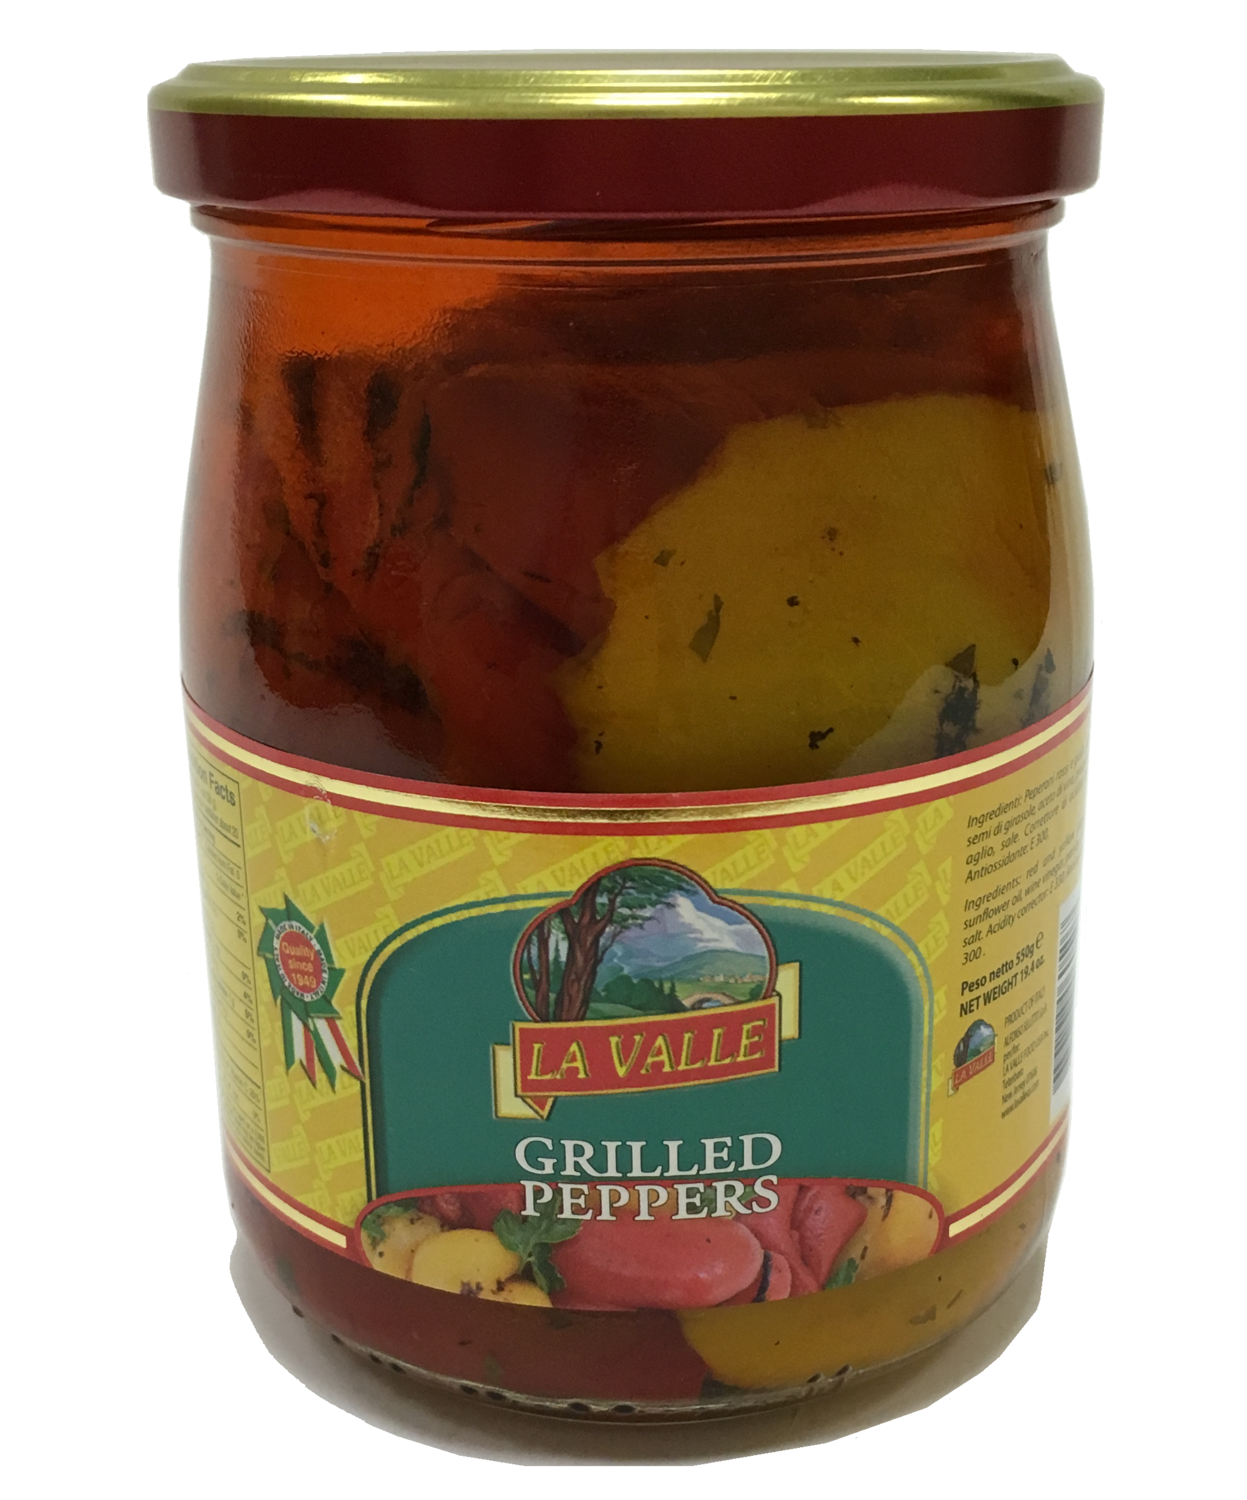 6/19oz jars of La Valle's Grilled Peppers